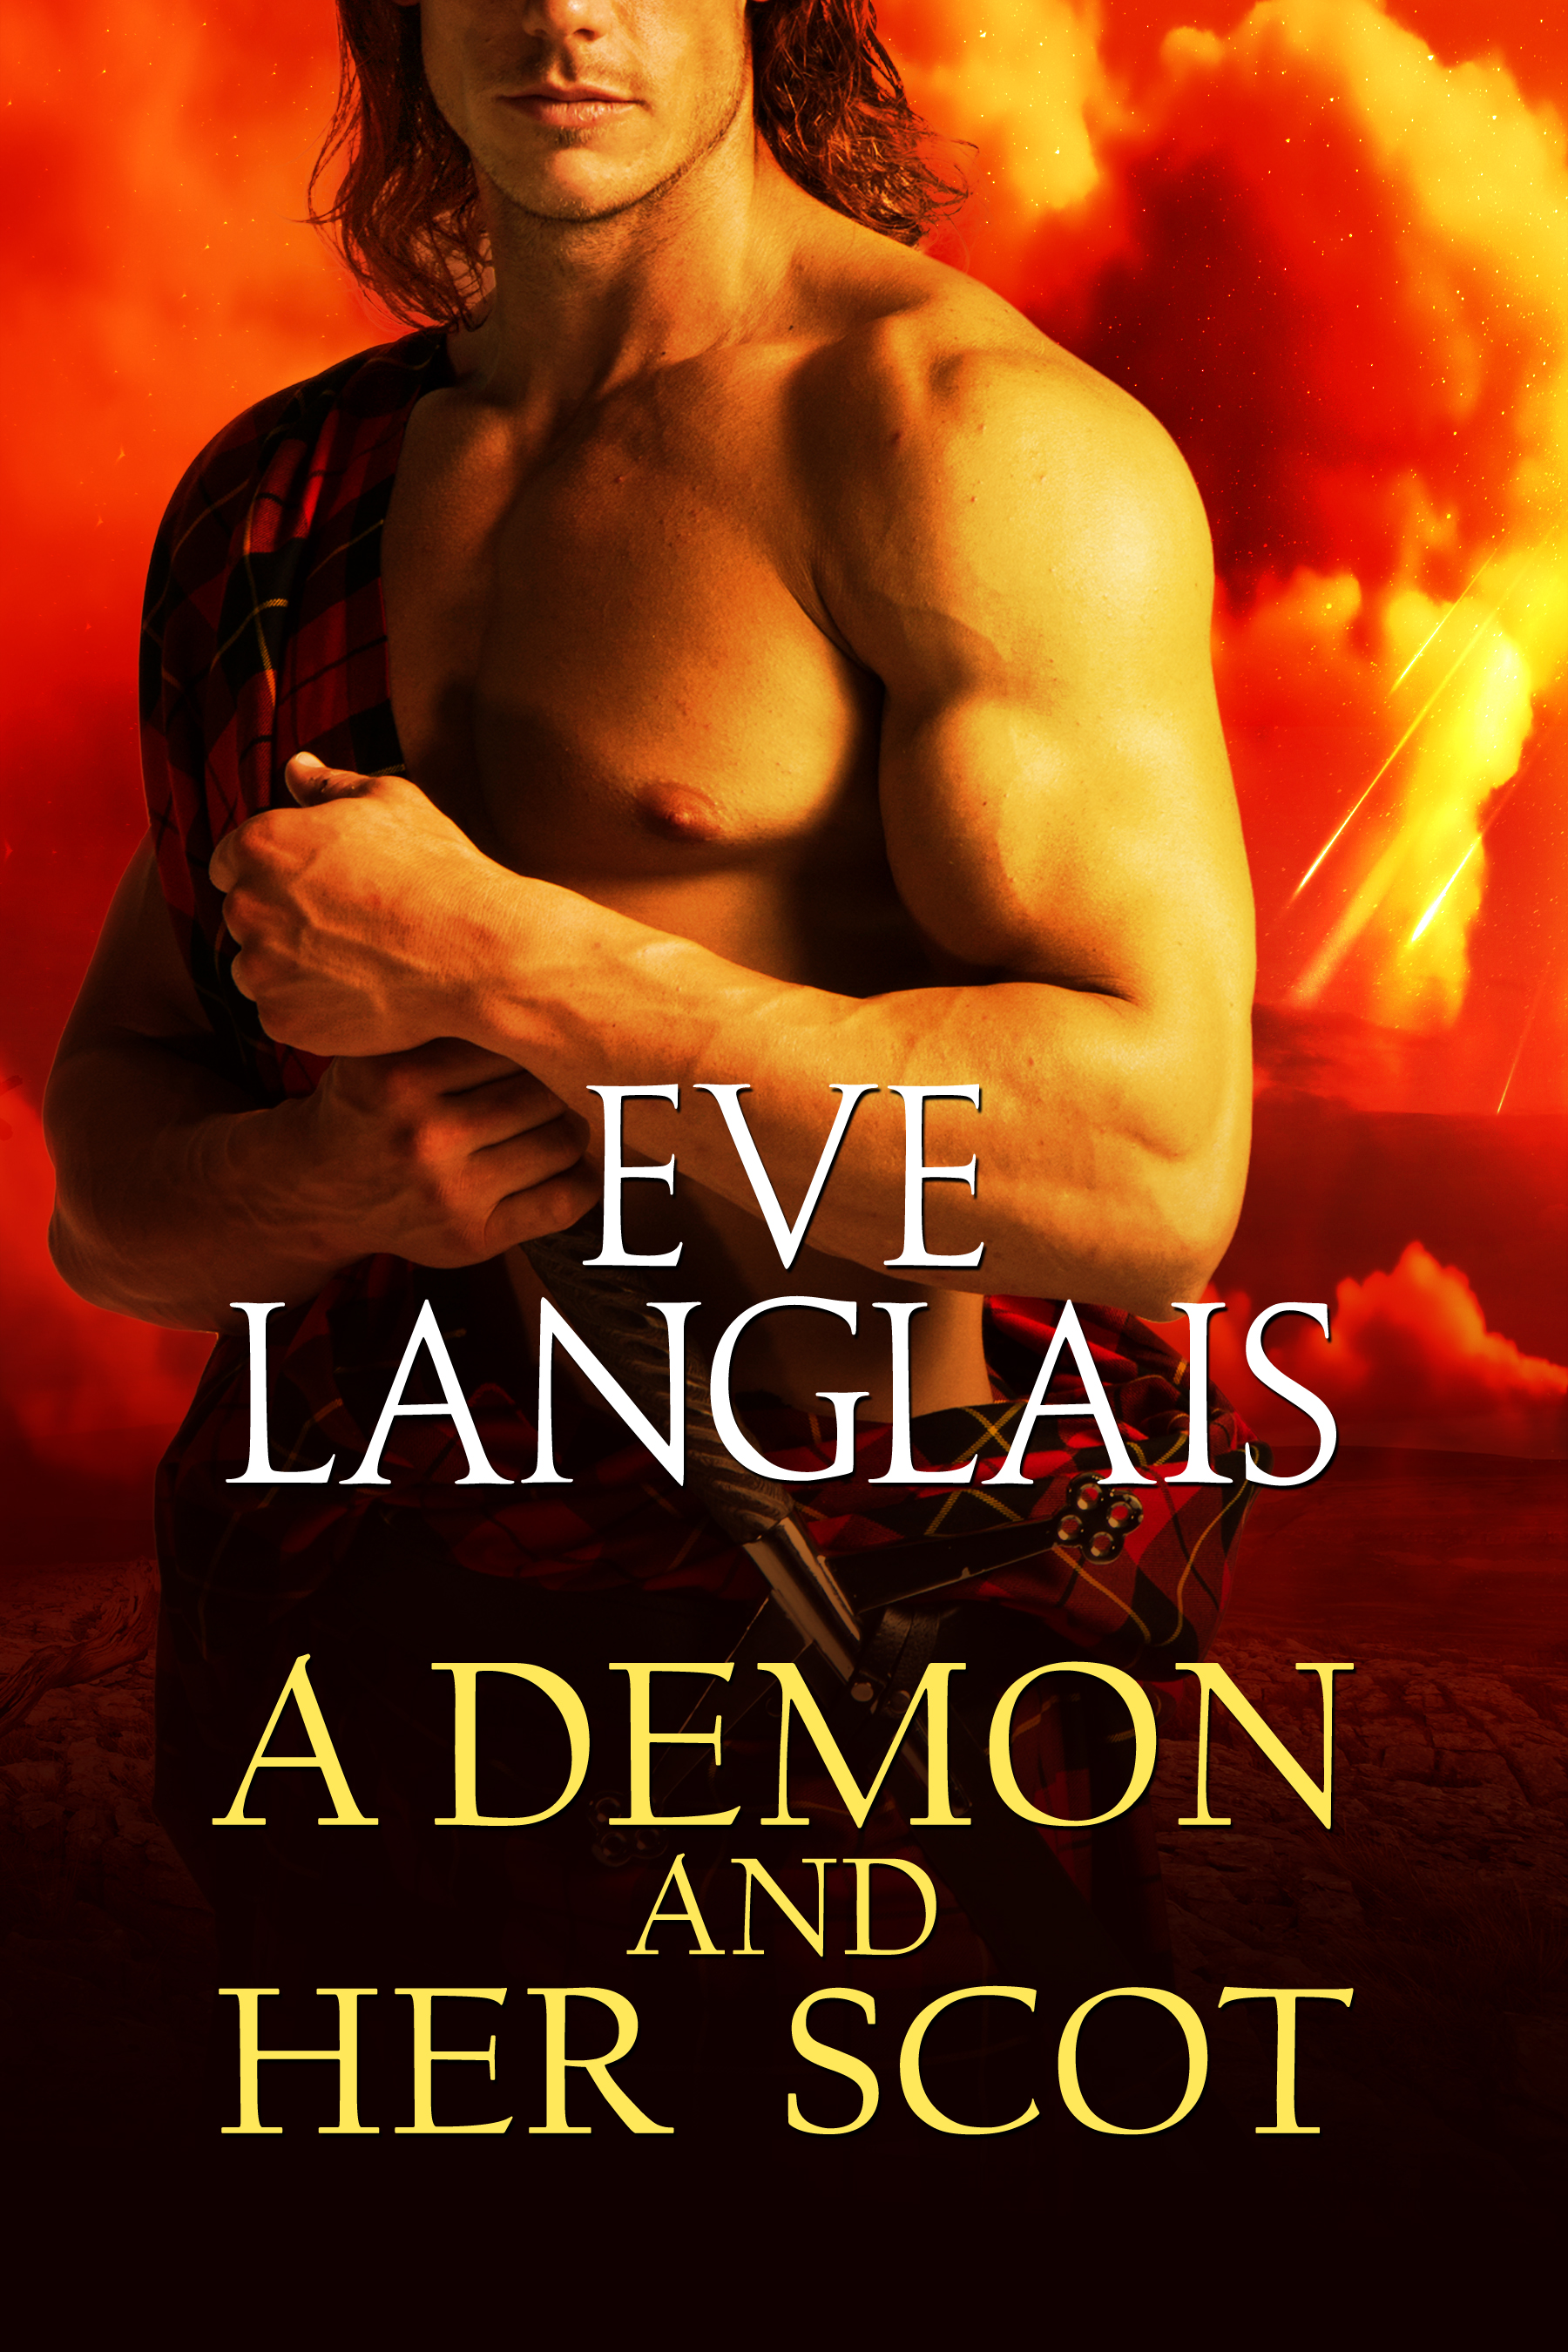 Eve Langlais - A Demon And Her Scot (Welcome To Hell, Book 3)